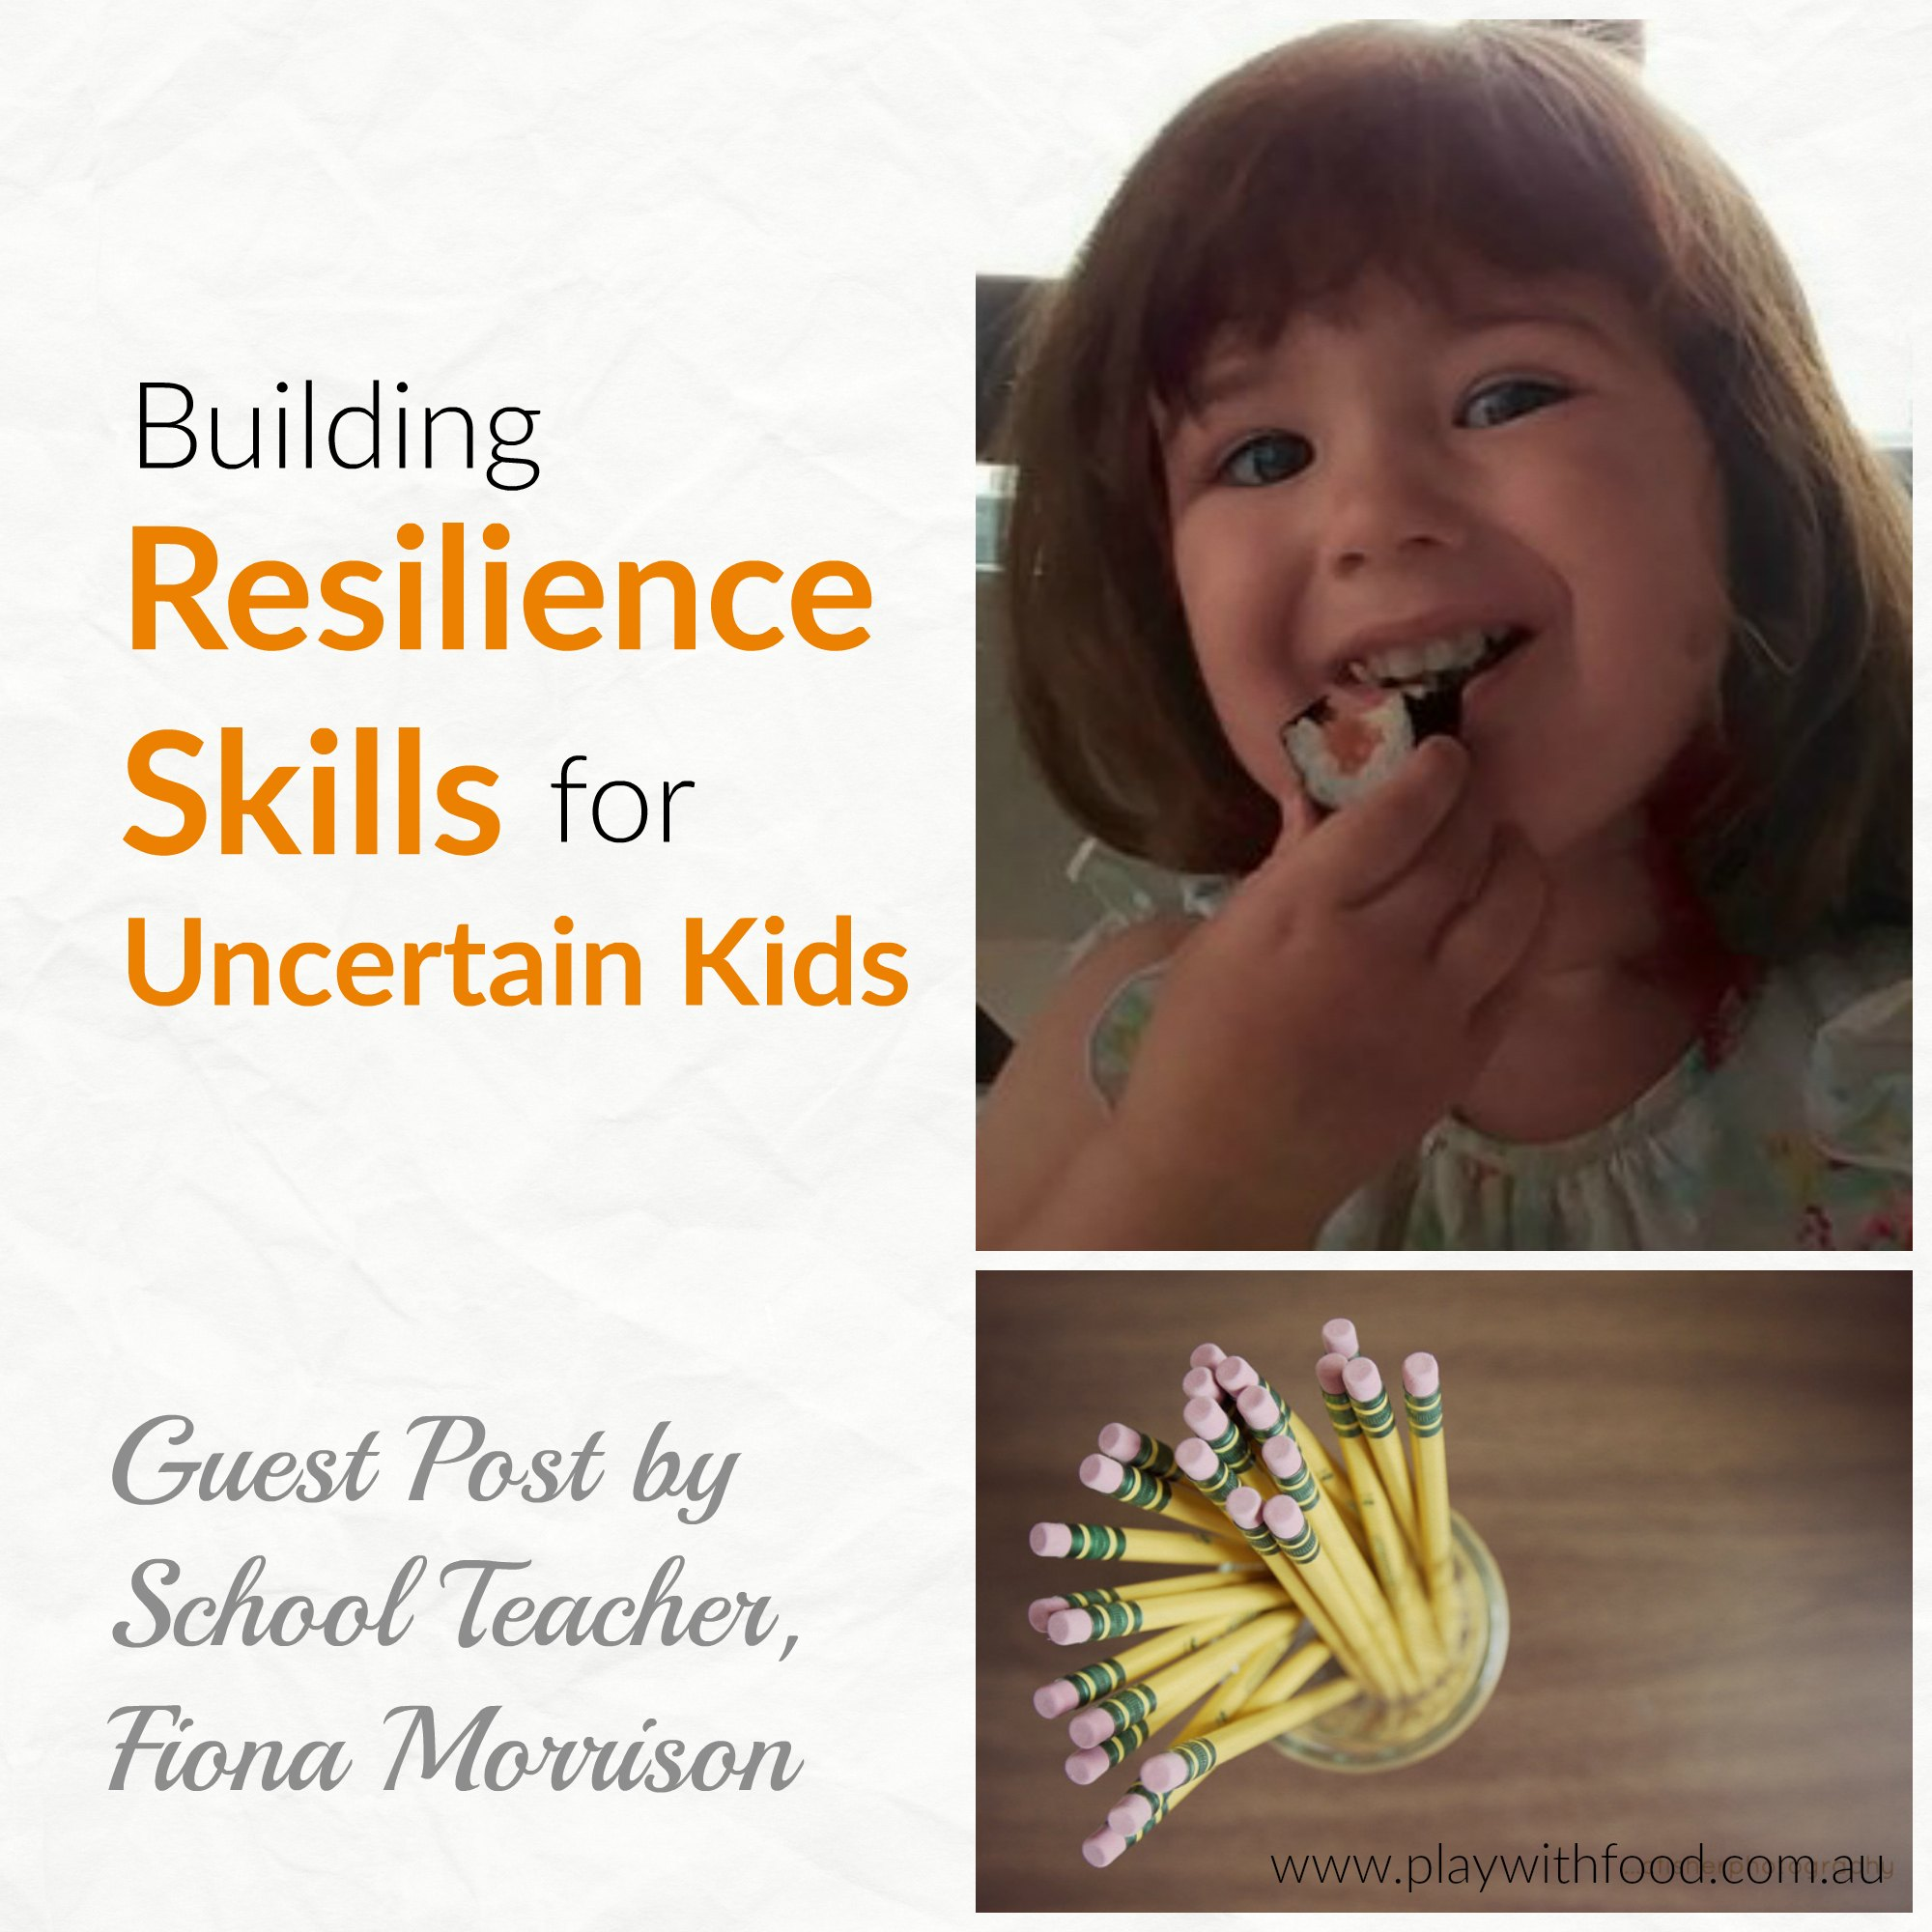 Building Resilience Skills for Uncertain Kids {Guest Post}